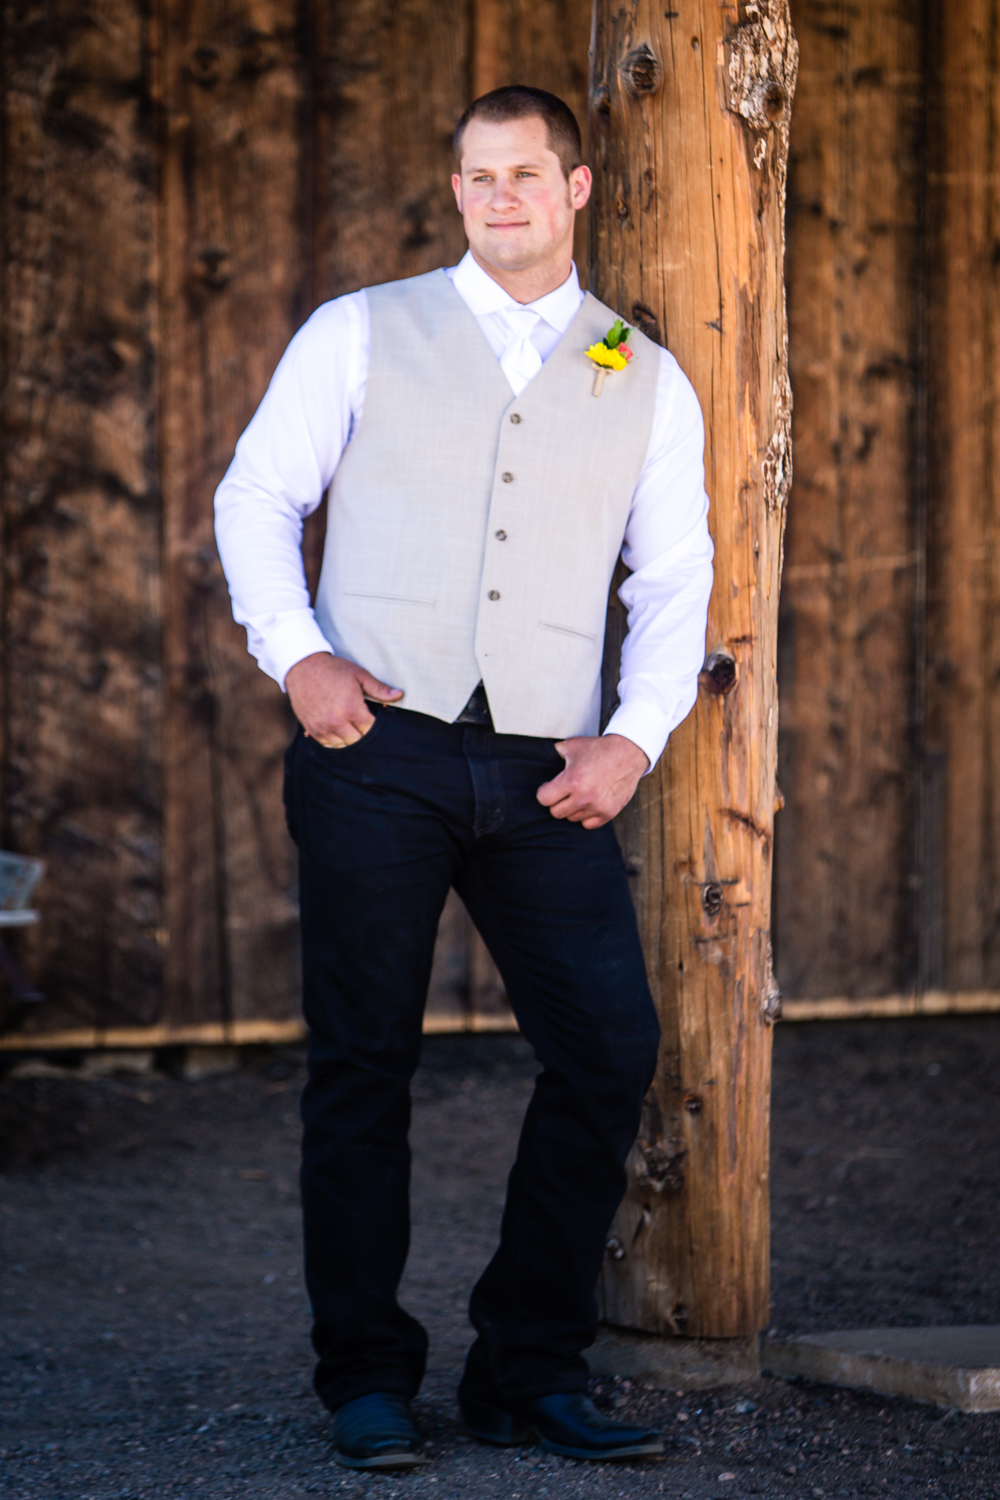 Groomals. The barn at Evergreen Memorial. Photographed by JMGant Photography.